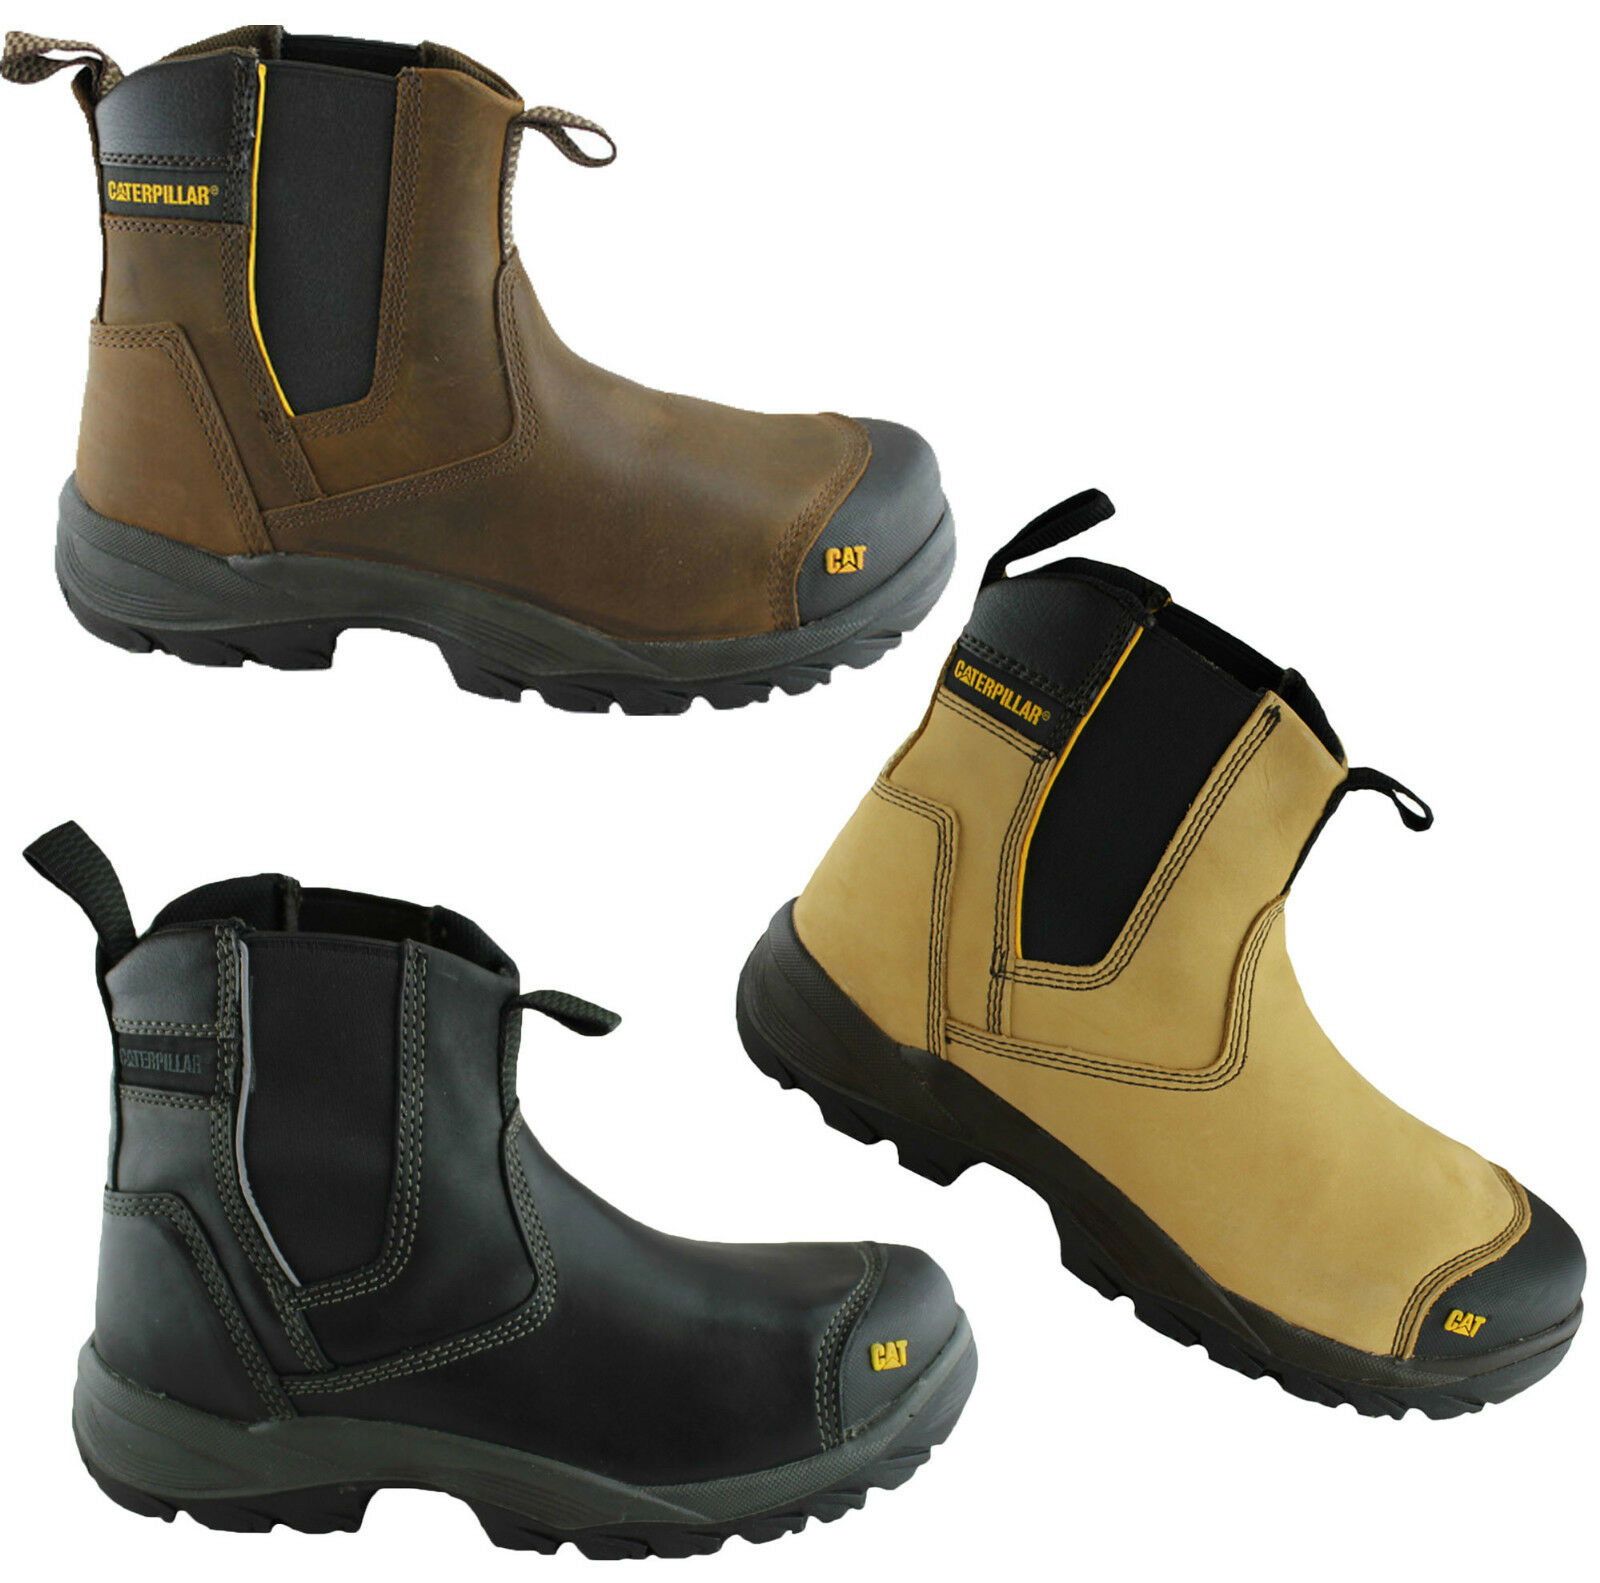 CATERPILLAR CATERPILLAR CATERPILLAR CAT PROPANE Uomo STEEL TOE WORK/SAFETY BOOTS/SHOES DURABLE ON EBAY! 528f16